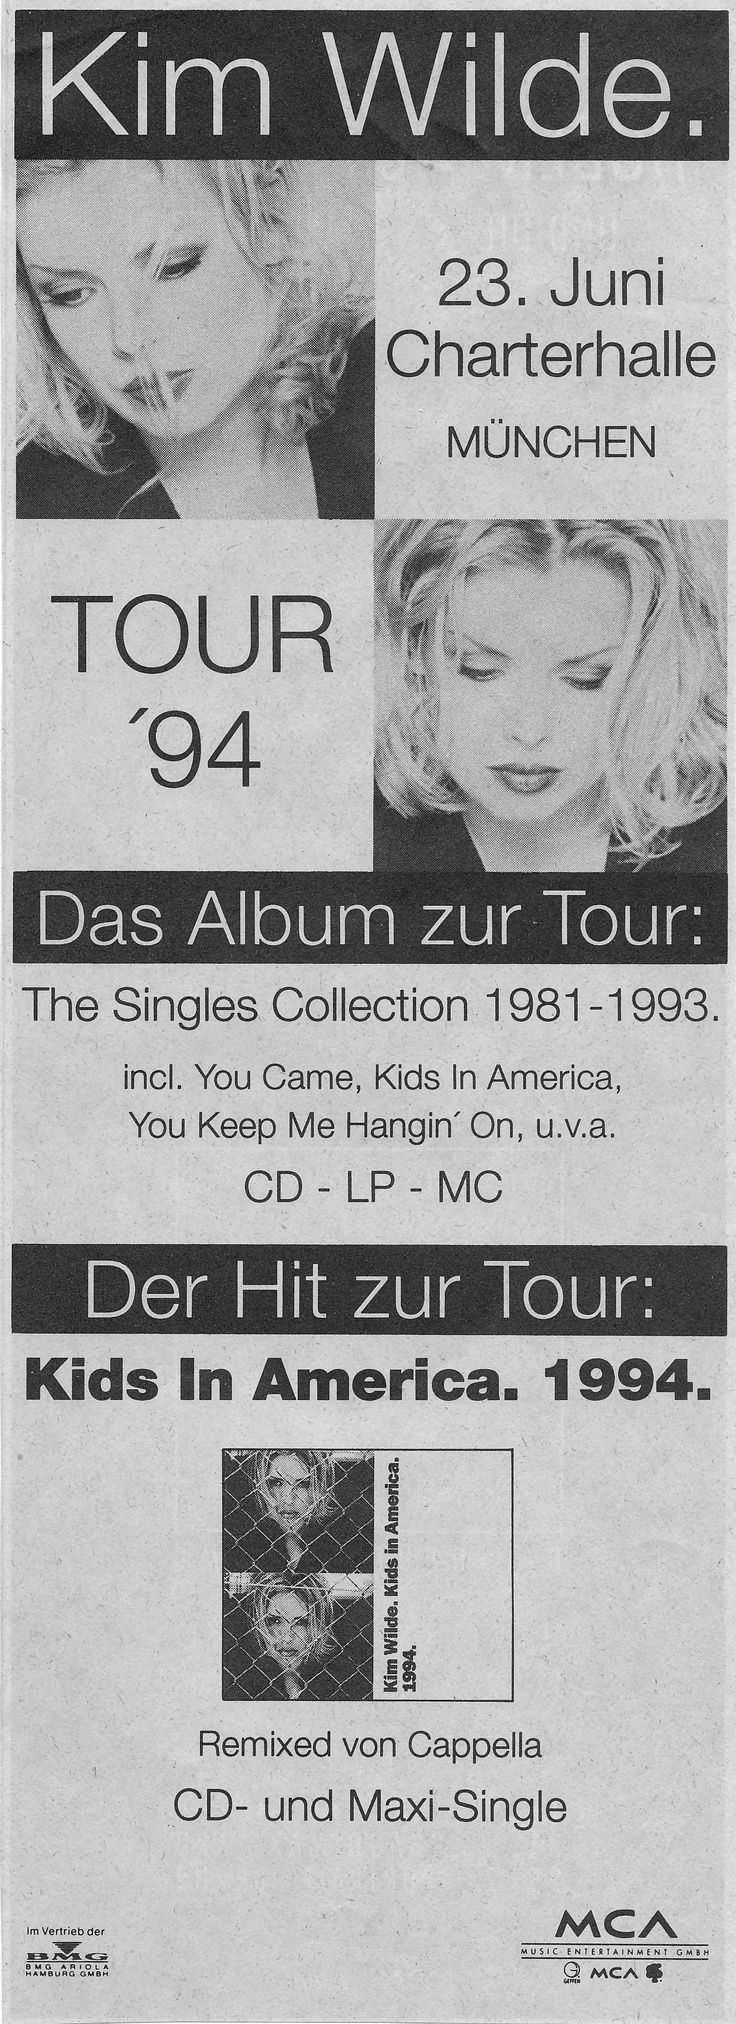 German advert for 'The Singles Collection 1981-1993', 1994.